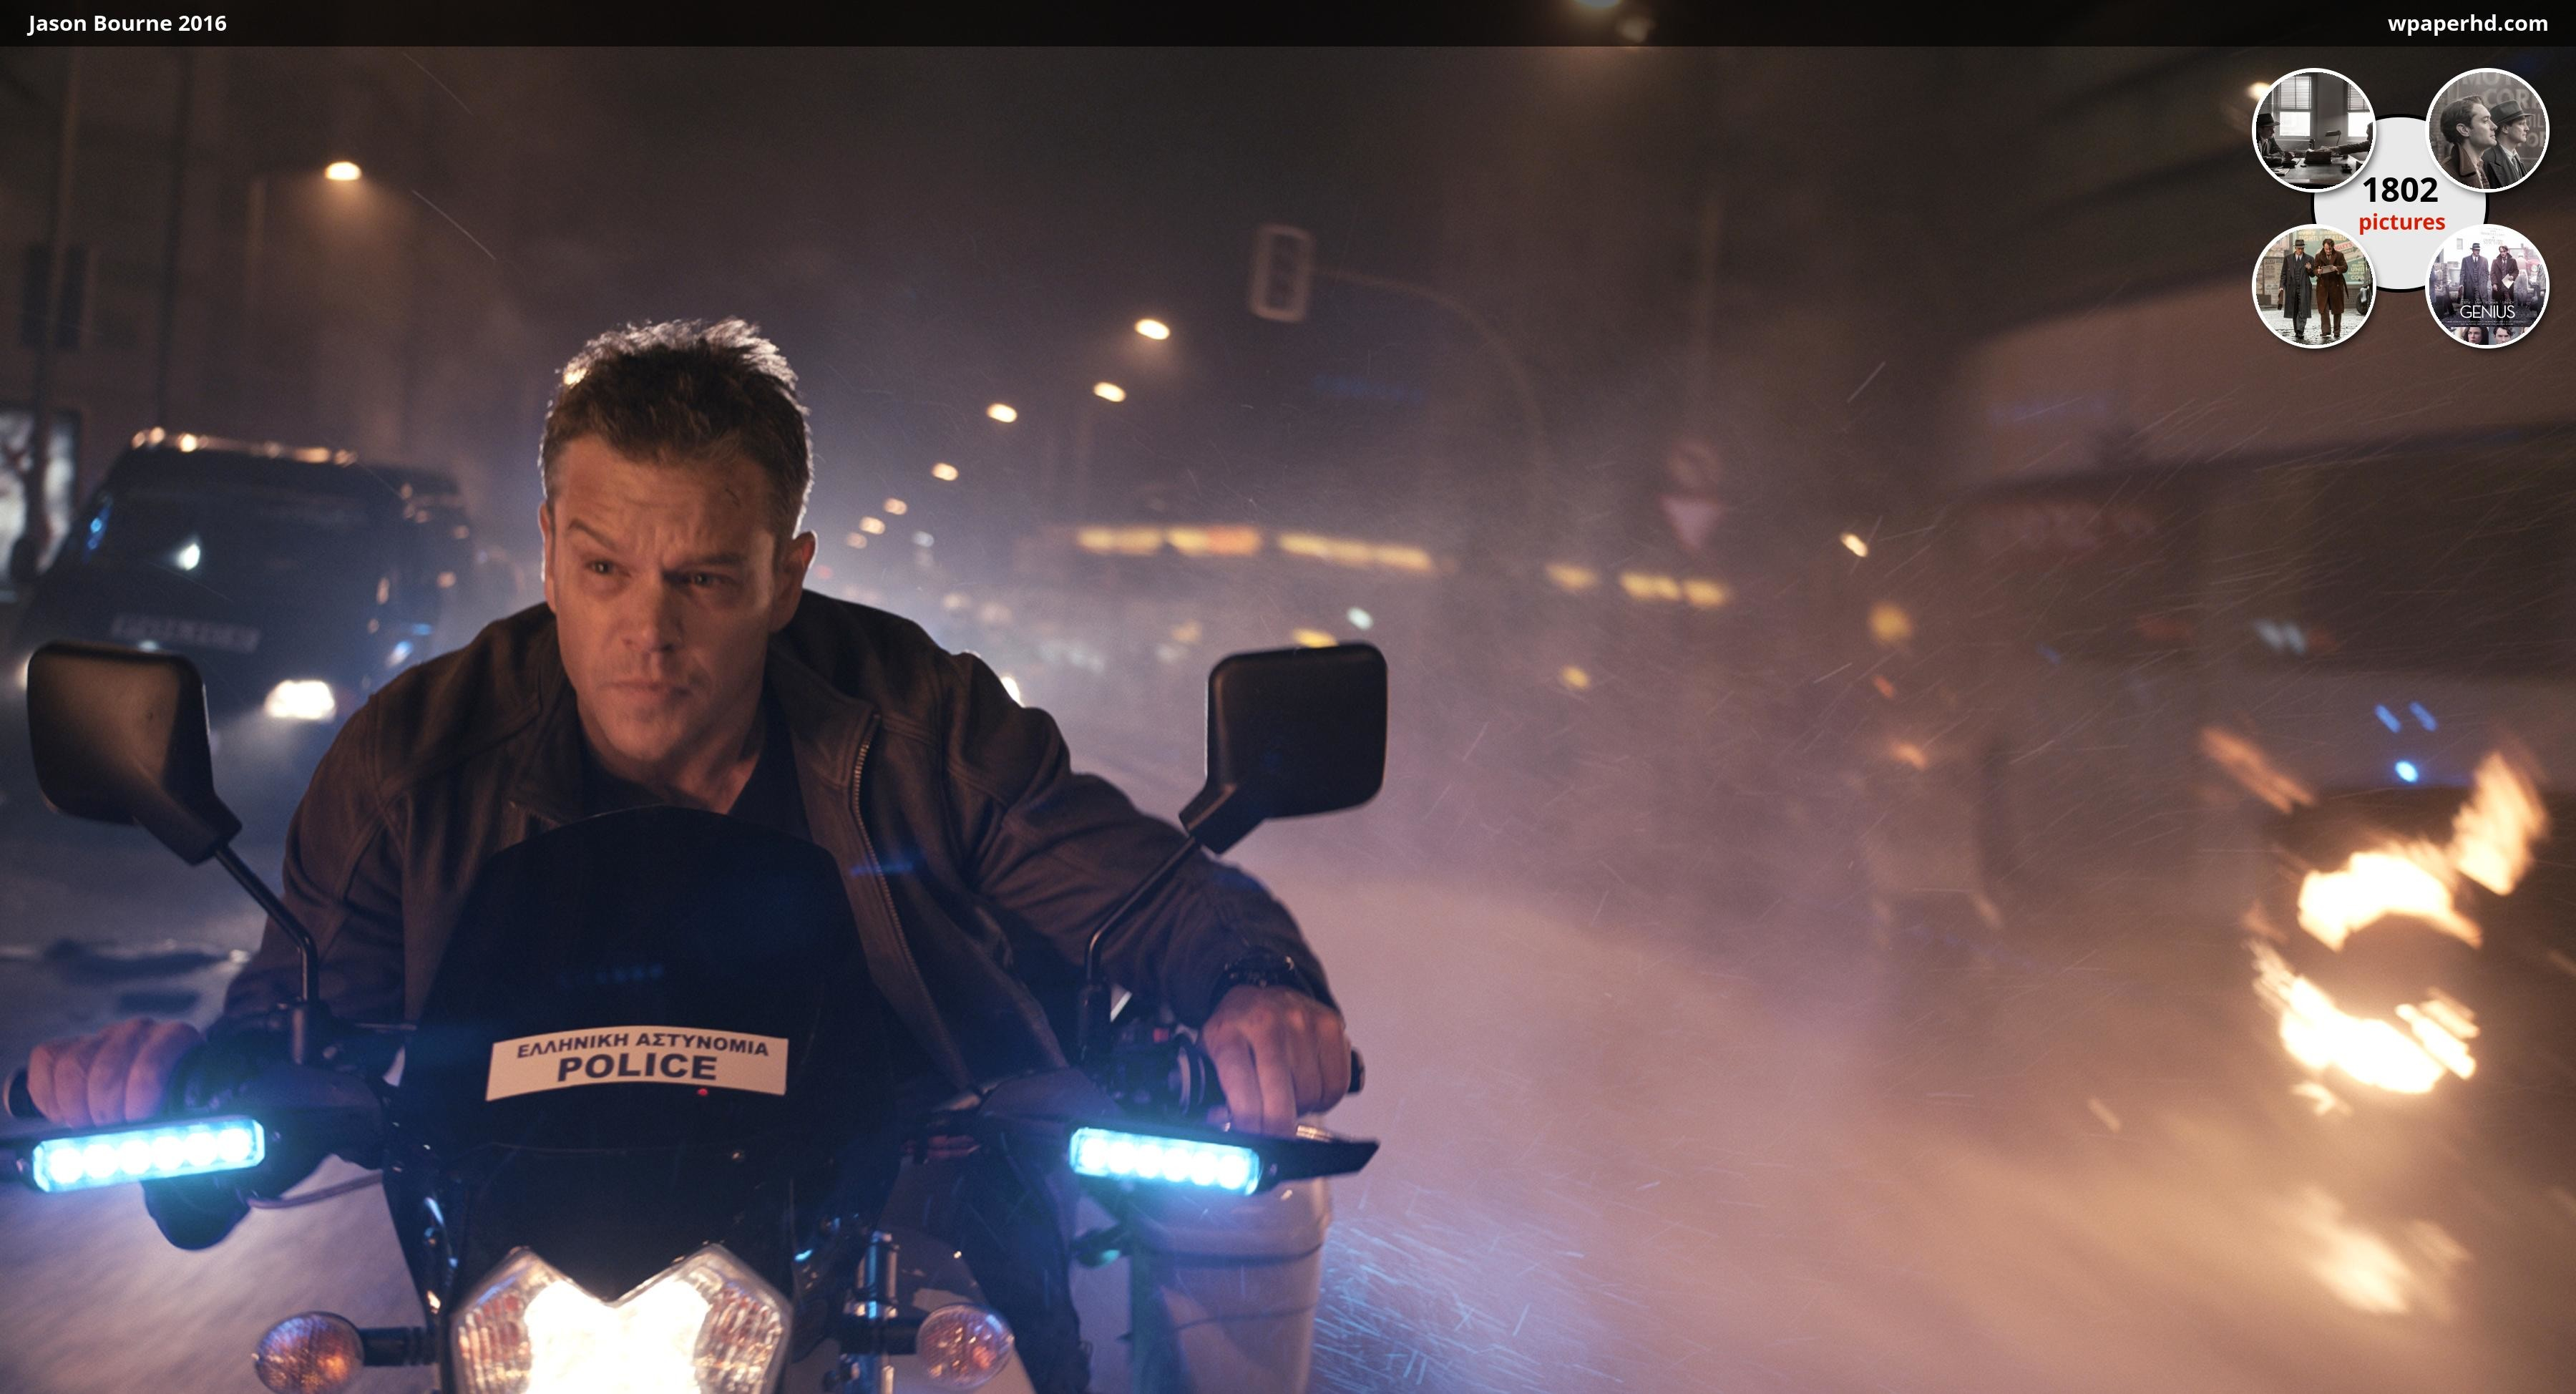 Res: 3600x1948, You are on page with Jason Bourne 2016 wallpaper, where you can download  this picture in Original size and ...